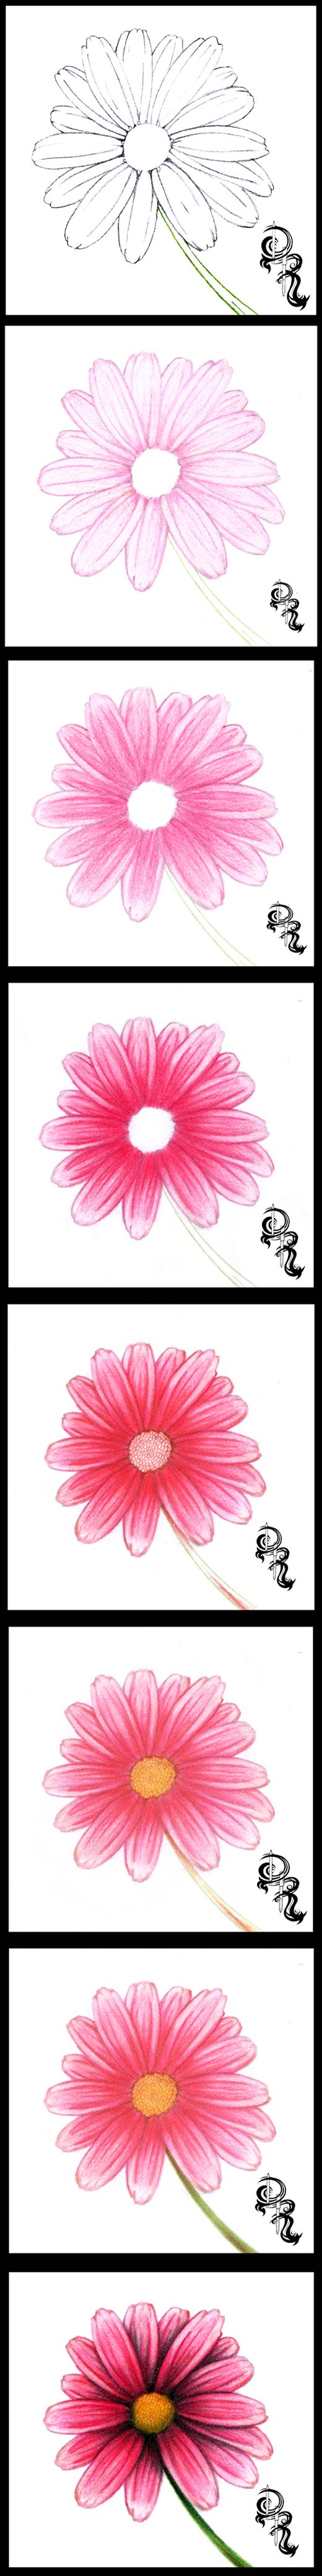 How to draw with colored pencils - How To Draw A Daisy With Colored Pencils A Step By Step Image Of